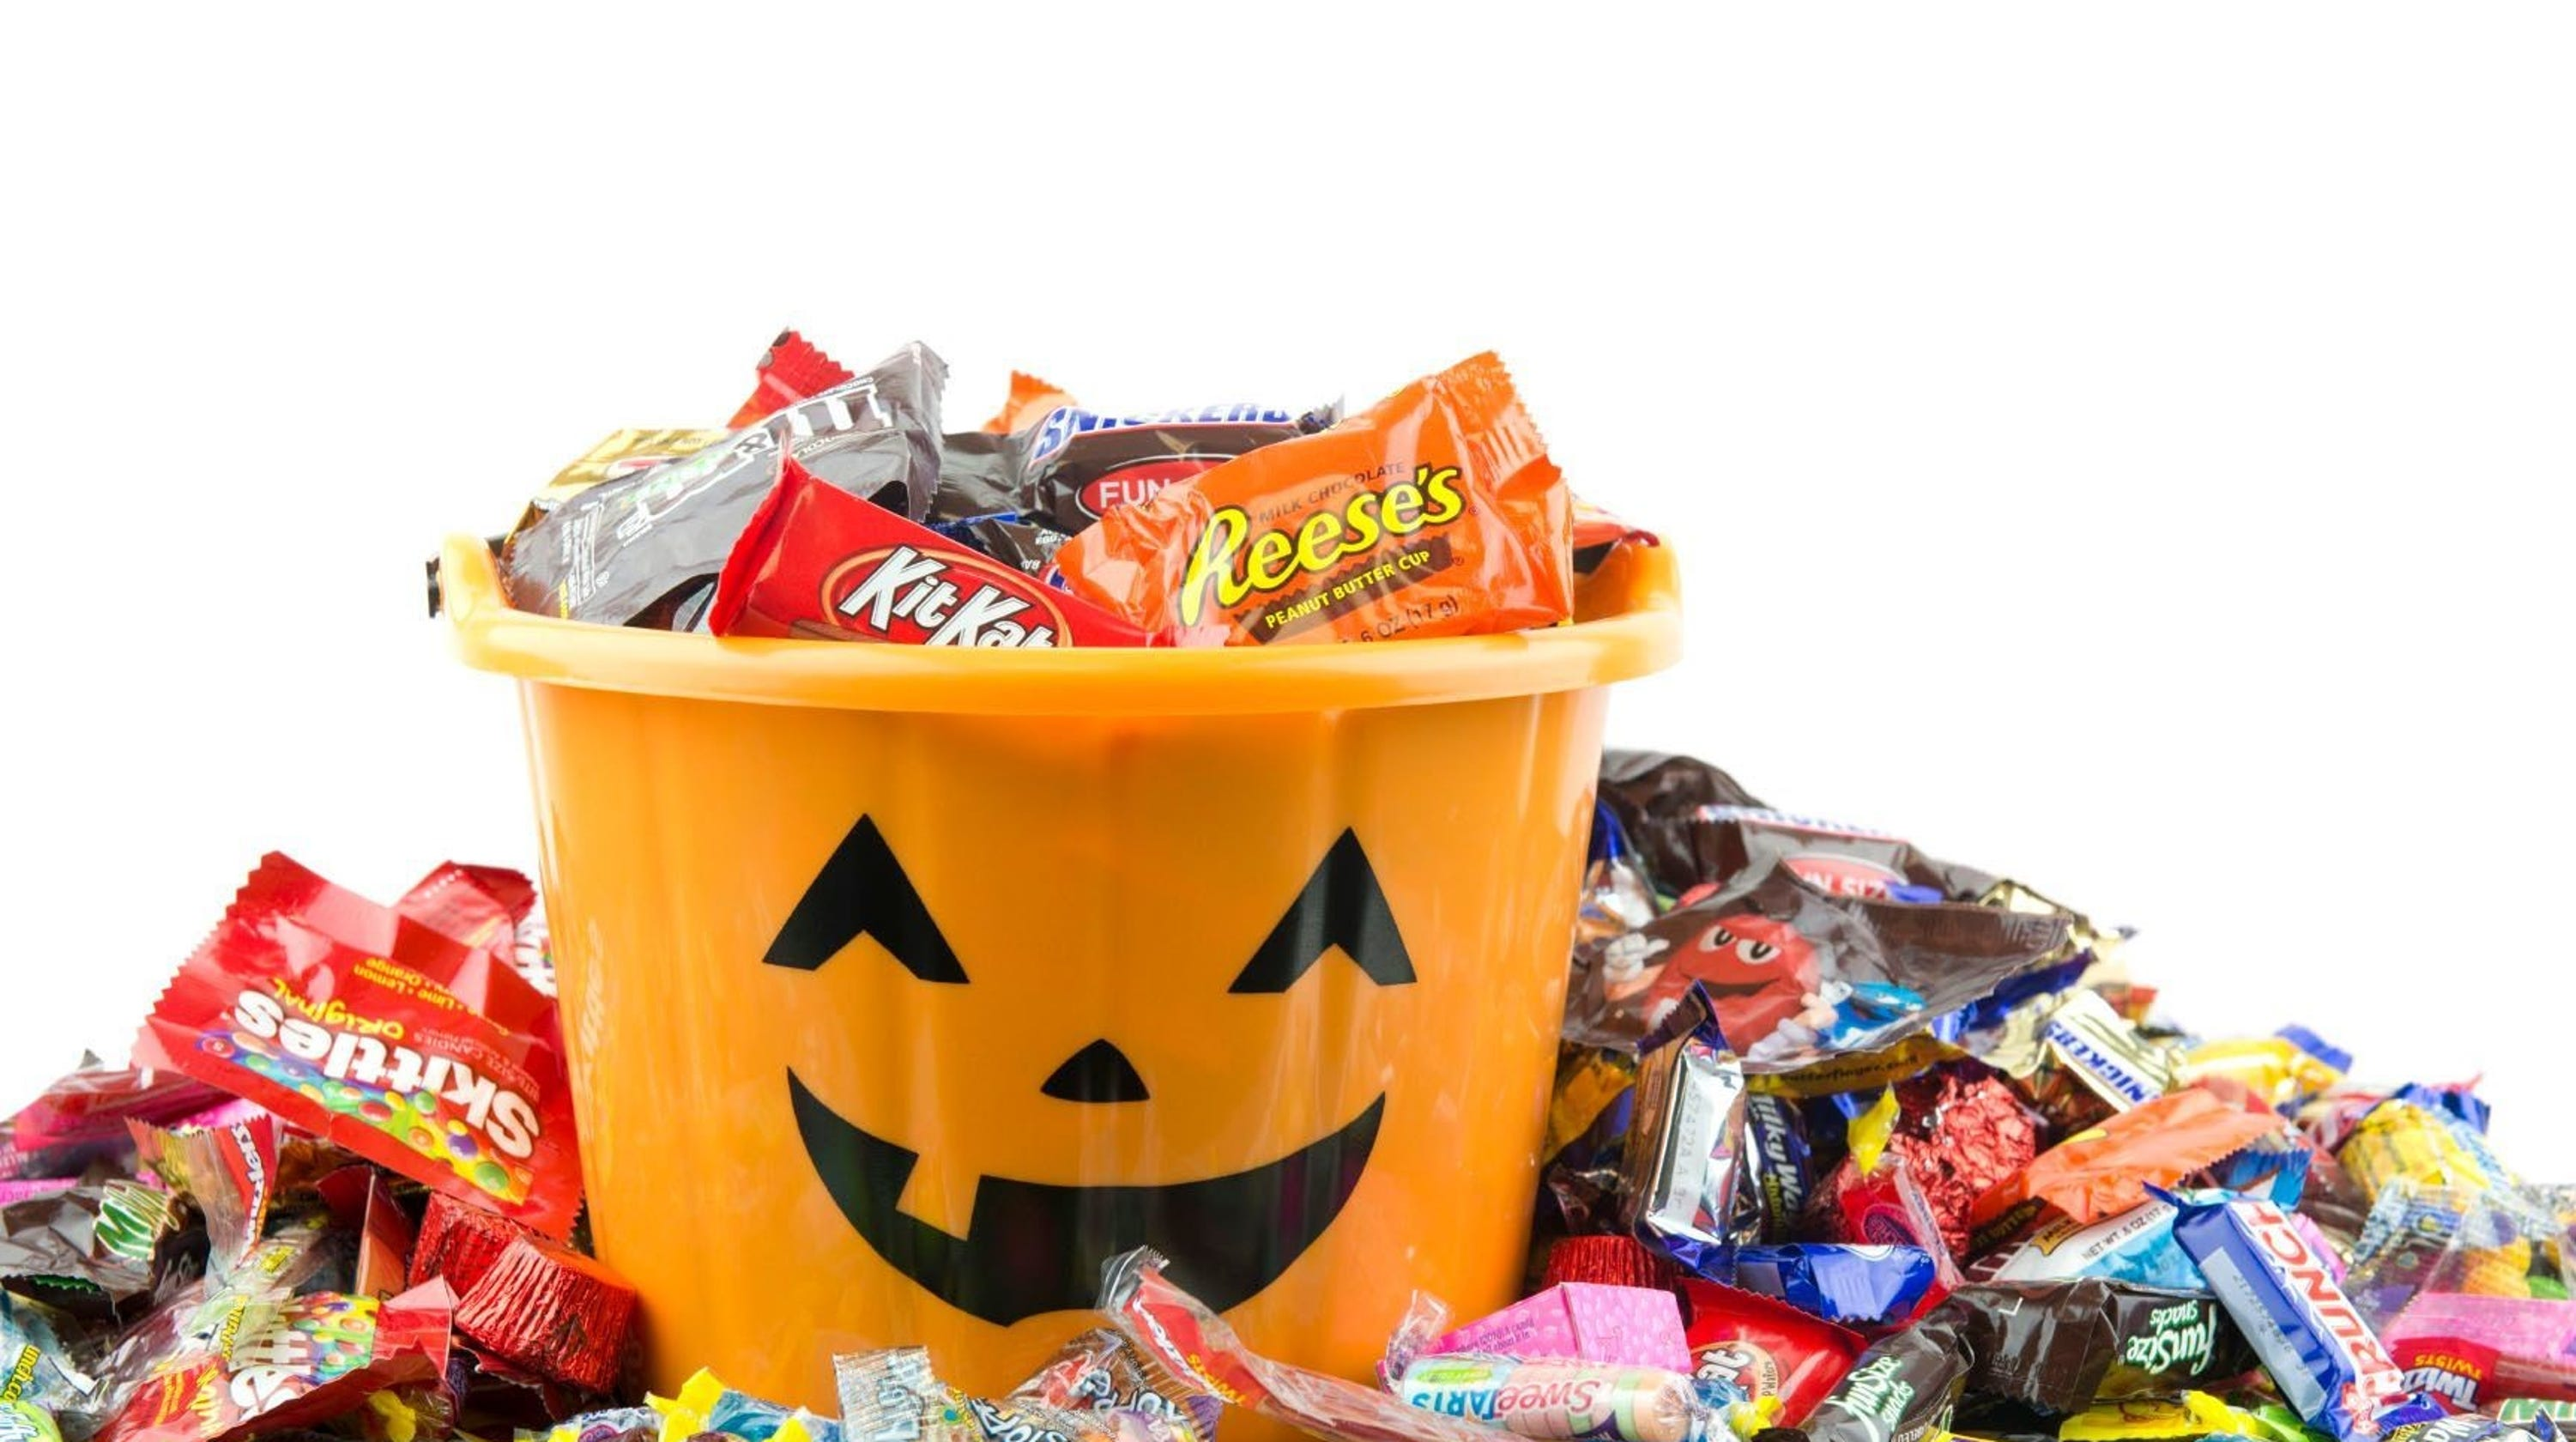 A trick-or-treat basket full of candy